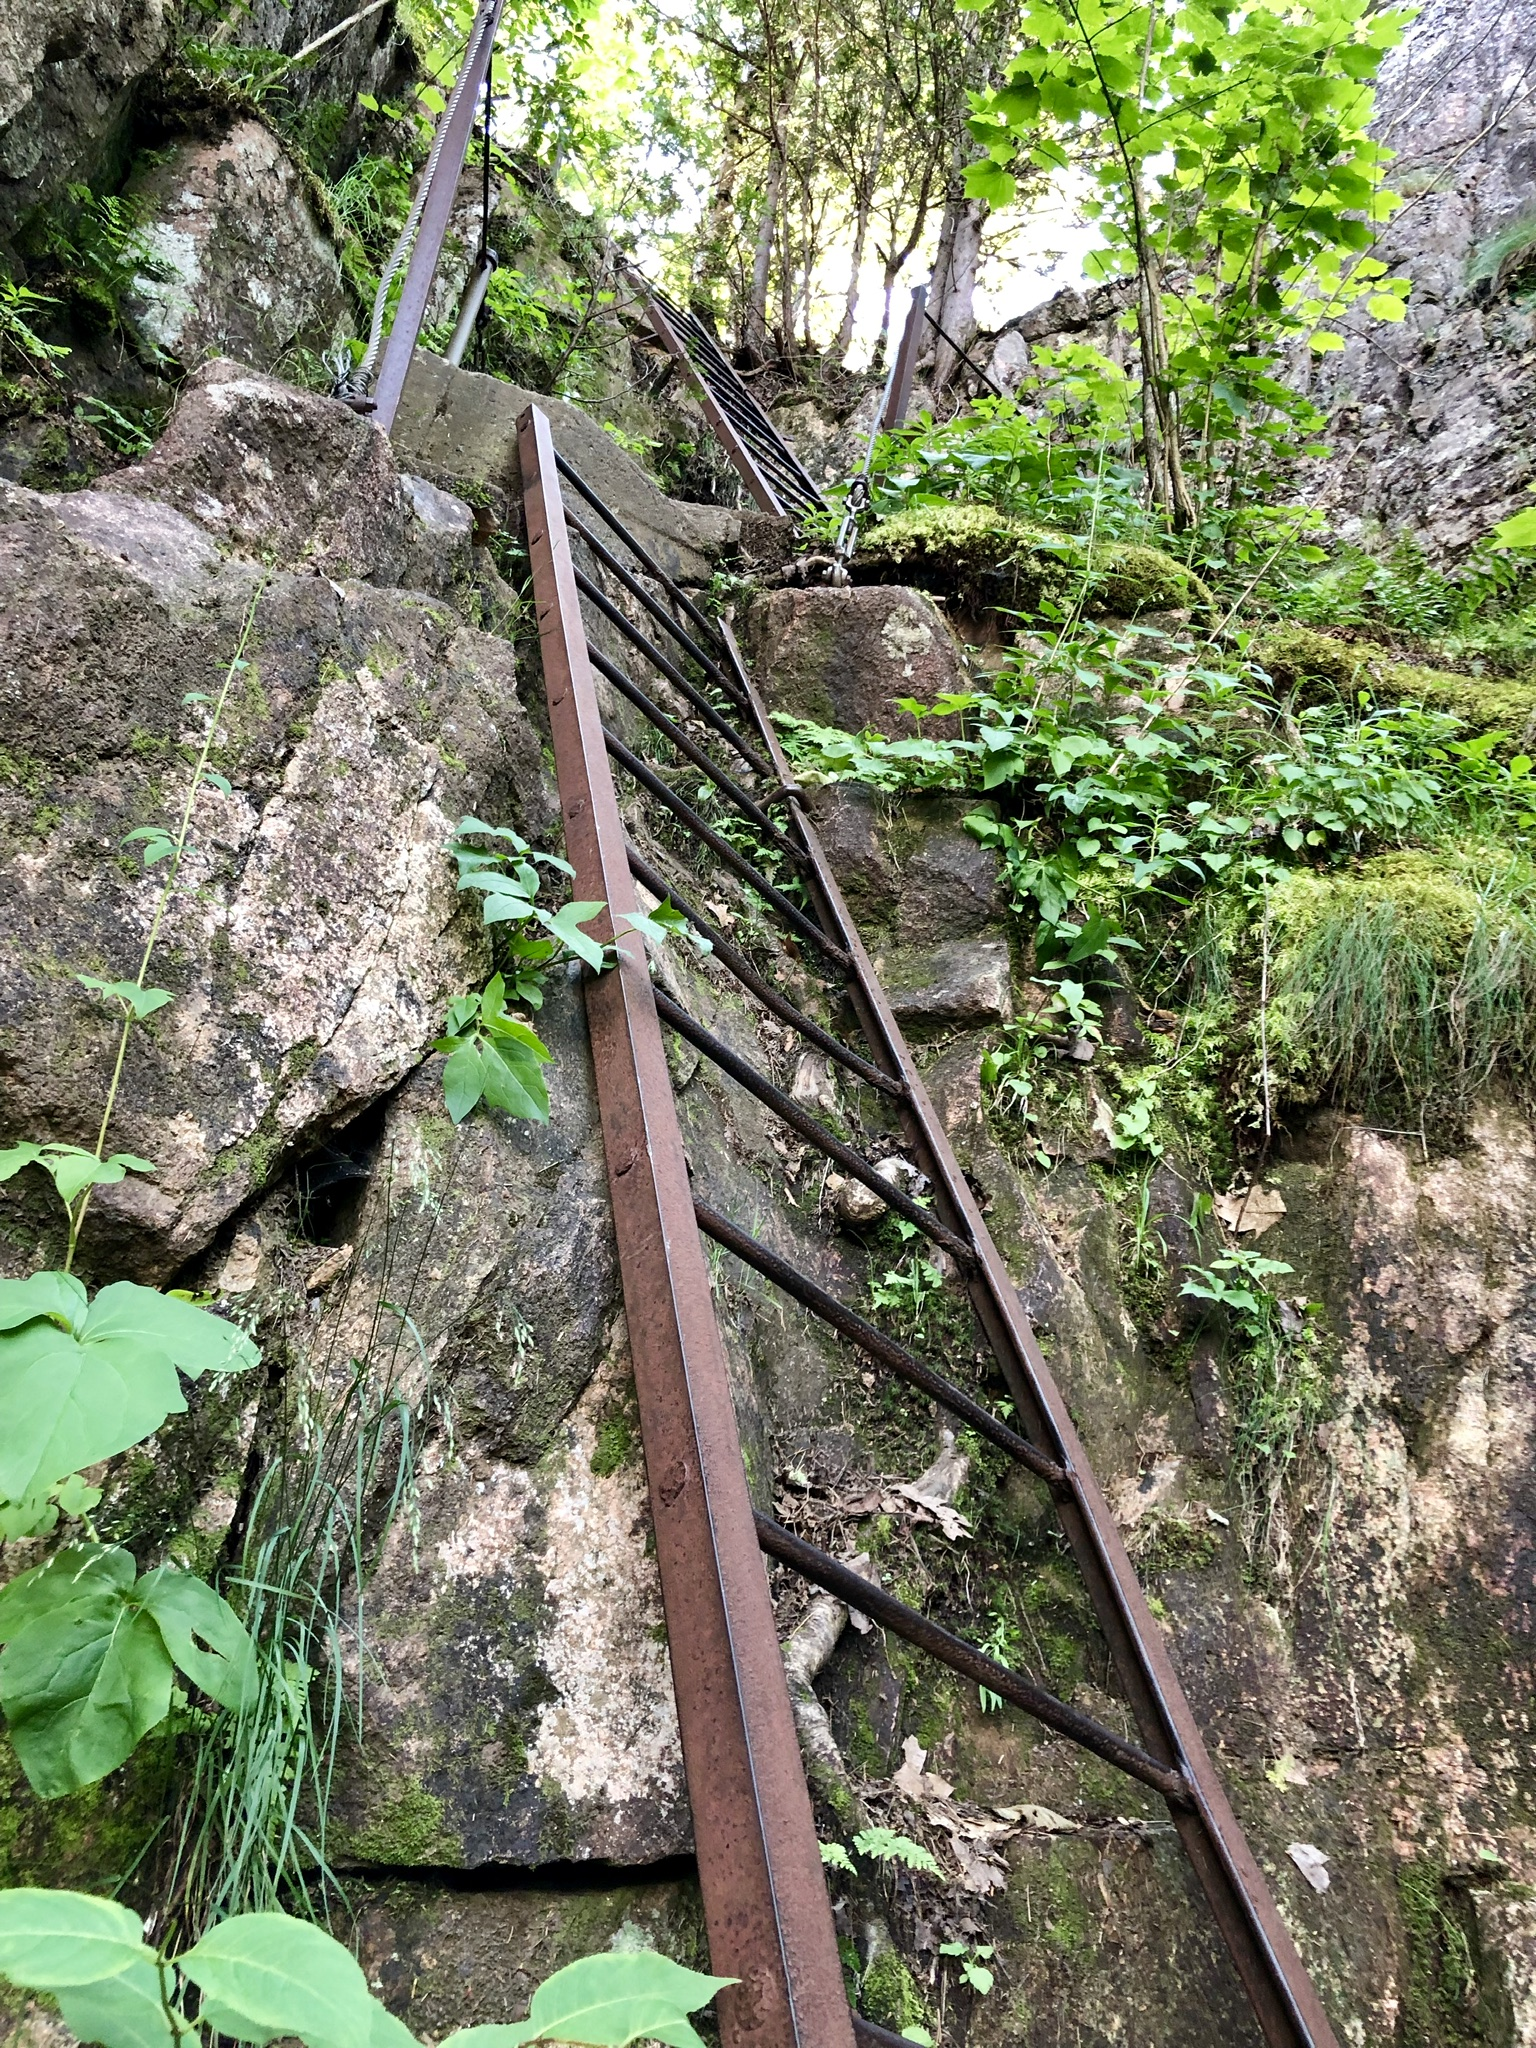 Ladders up Canadian Cliffs